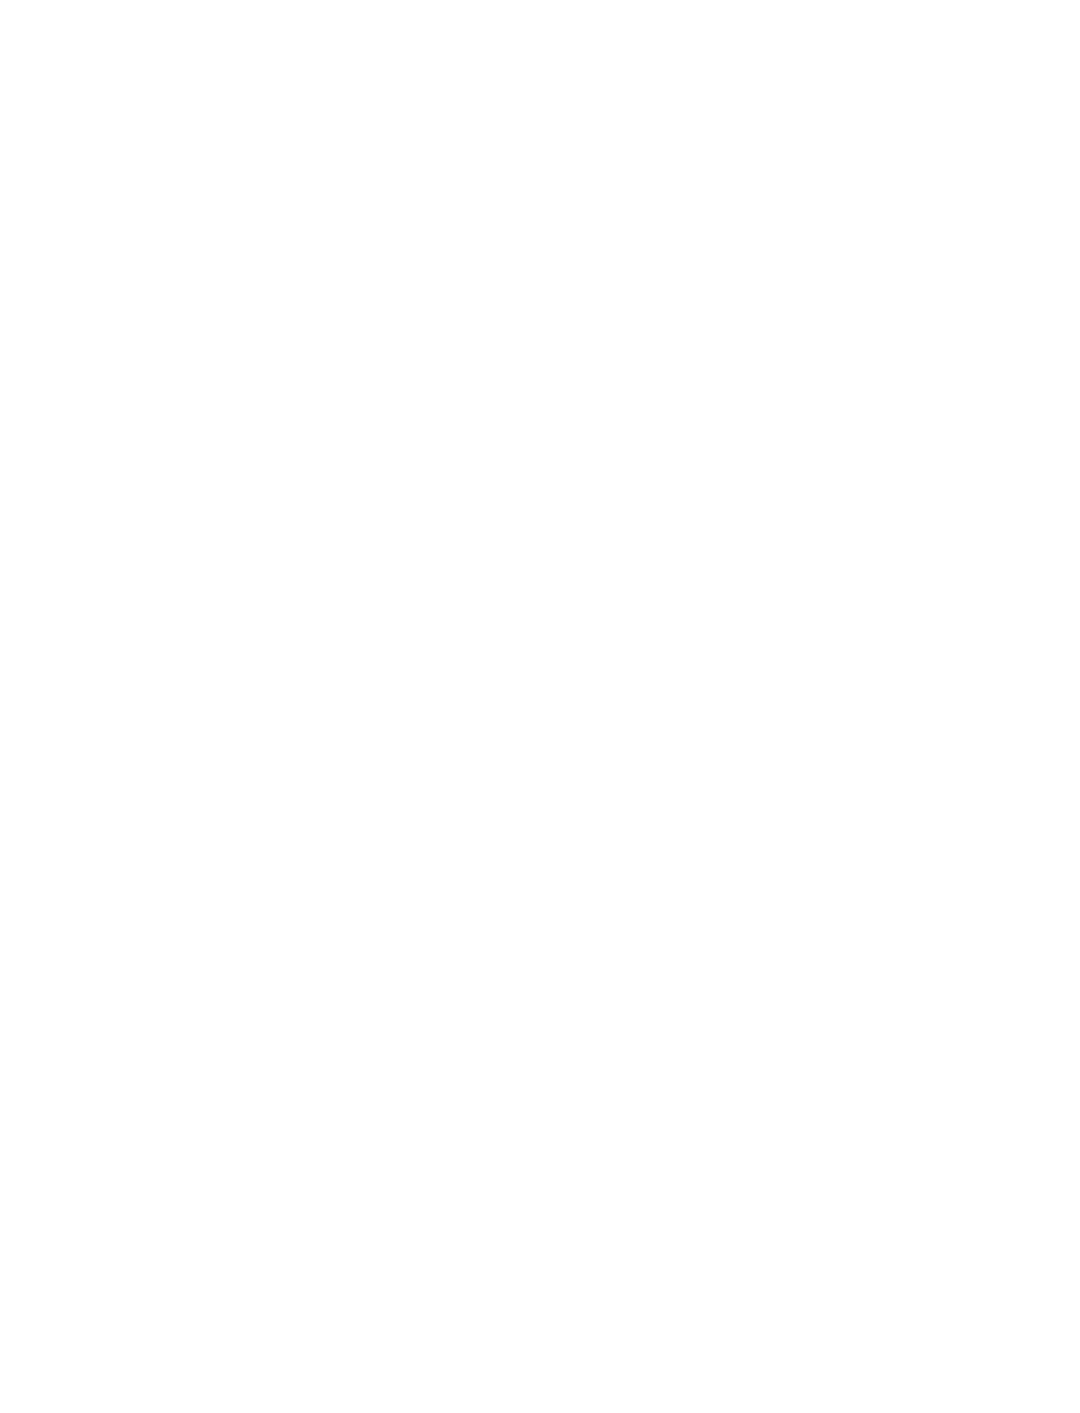 Tribute to America's Heroes - Vertical White Logo